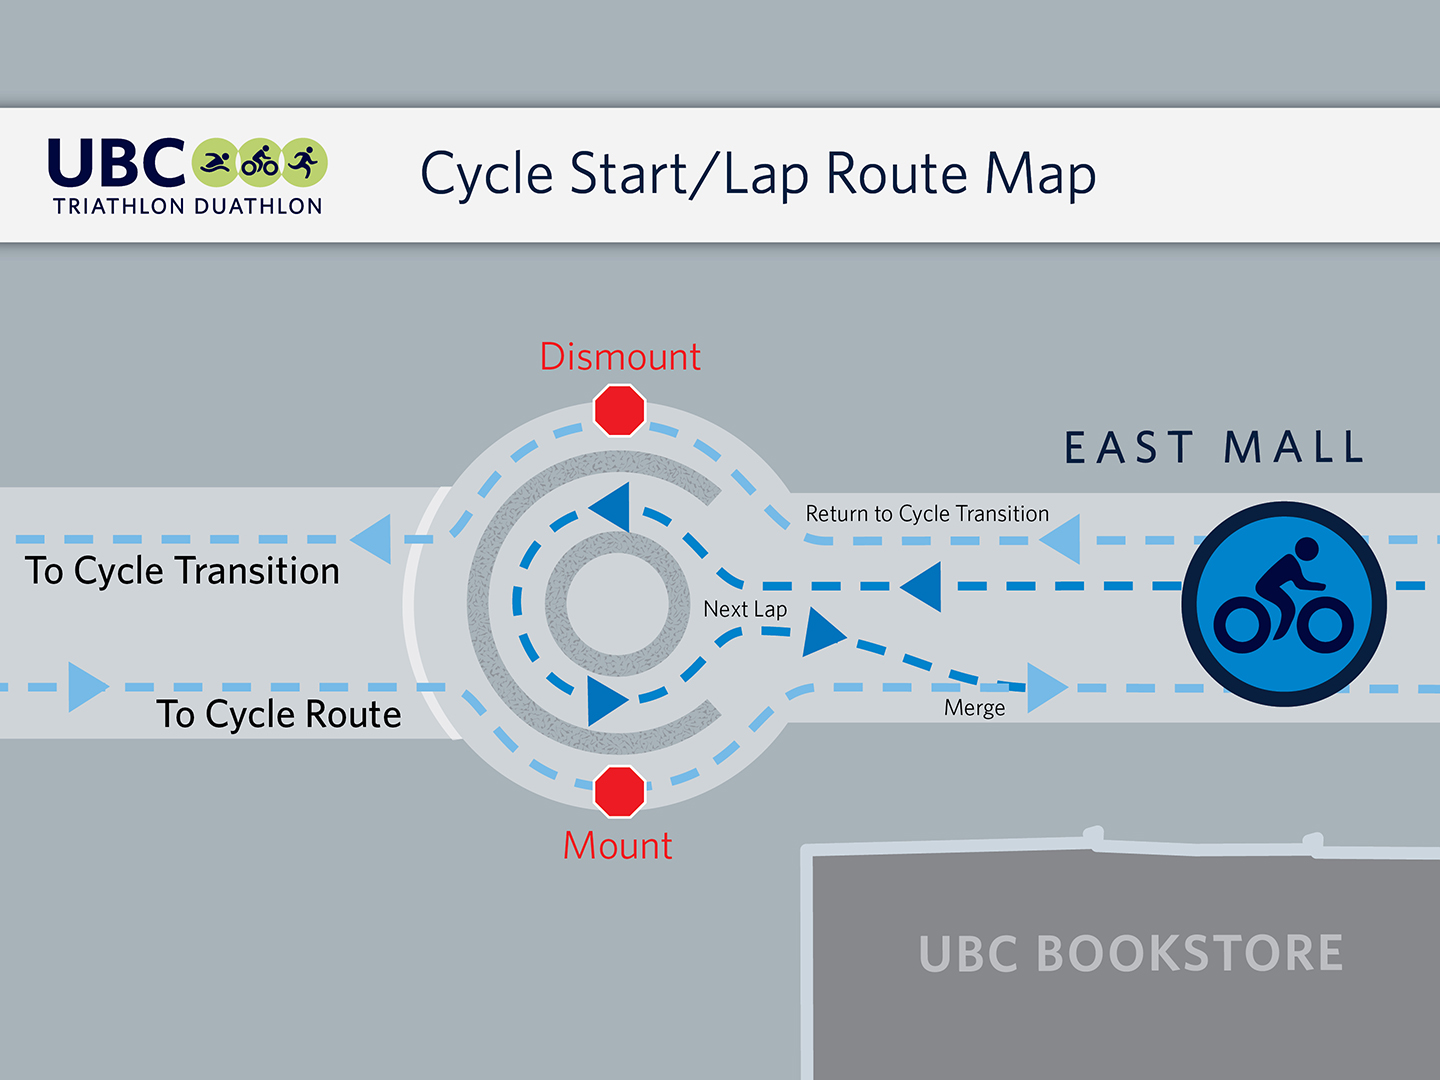 2019 UBC Triathlon Duathlon Cycle Lap Route Map